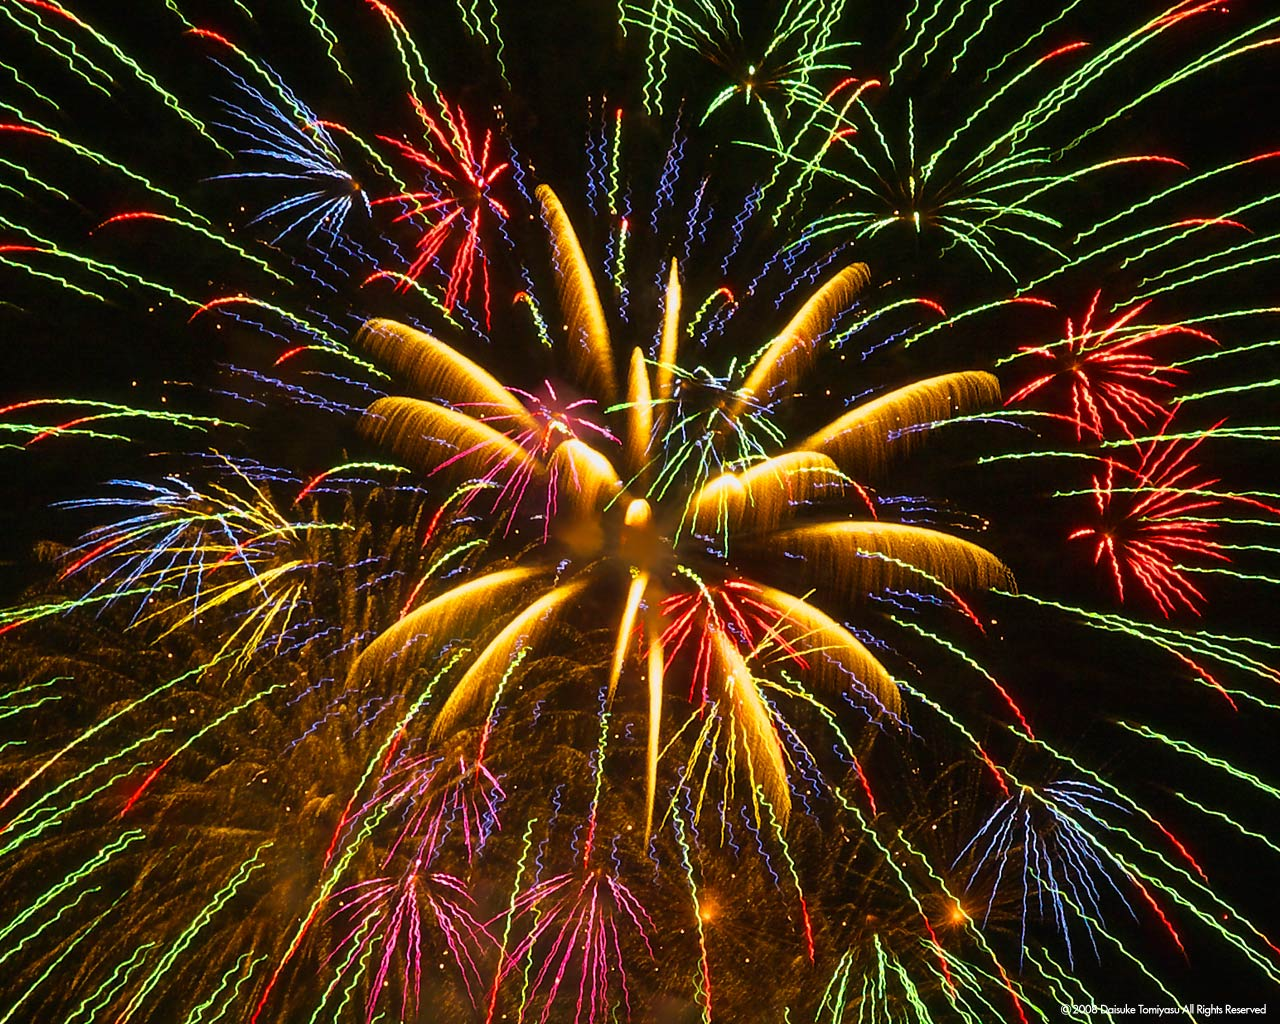 Moving fireworks clipart - Fireworks Pictures Free Clipart